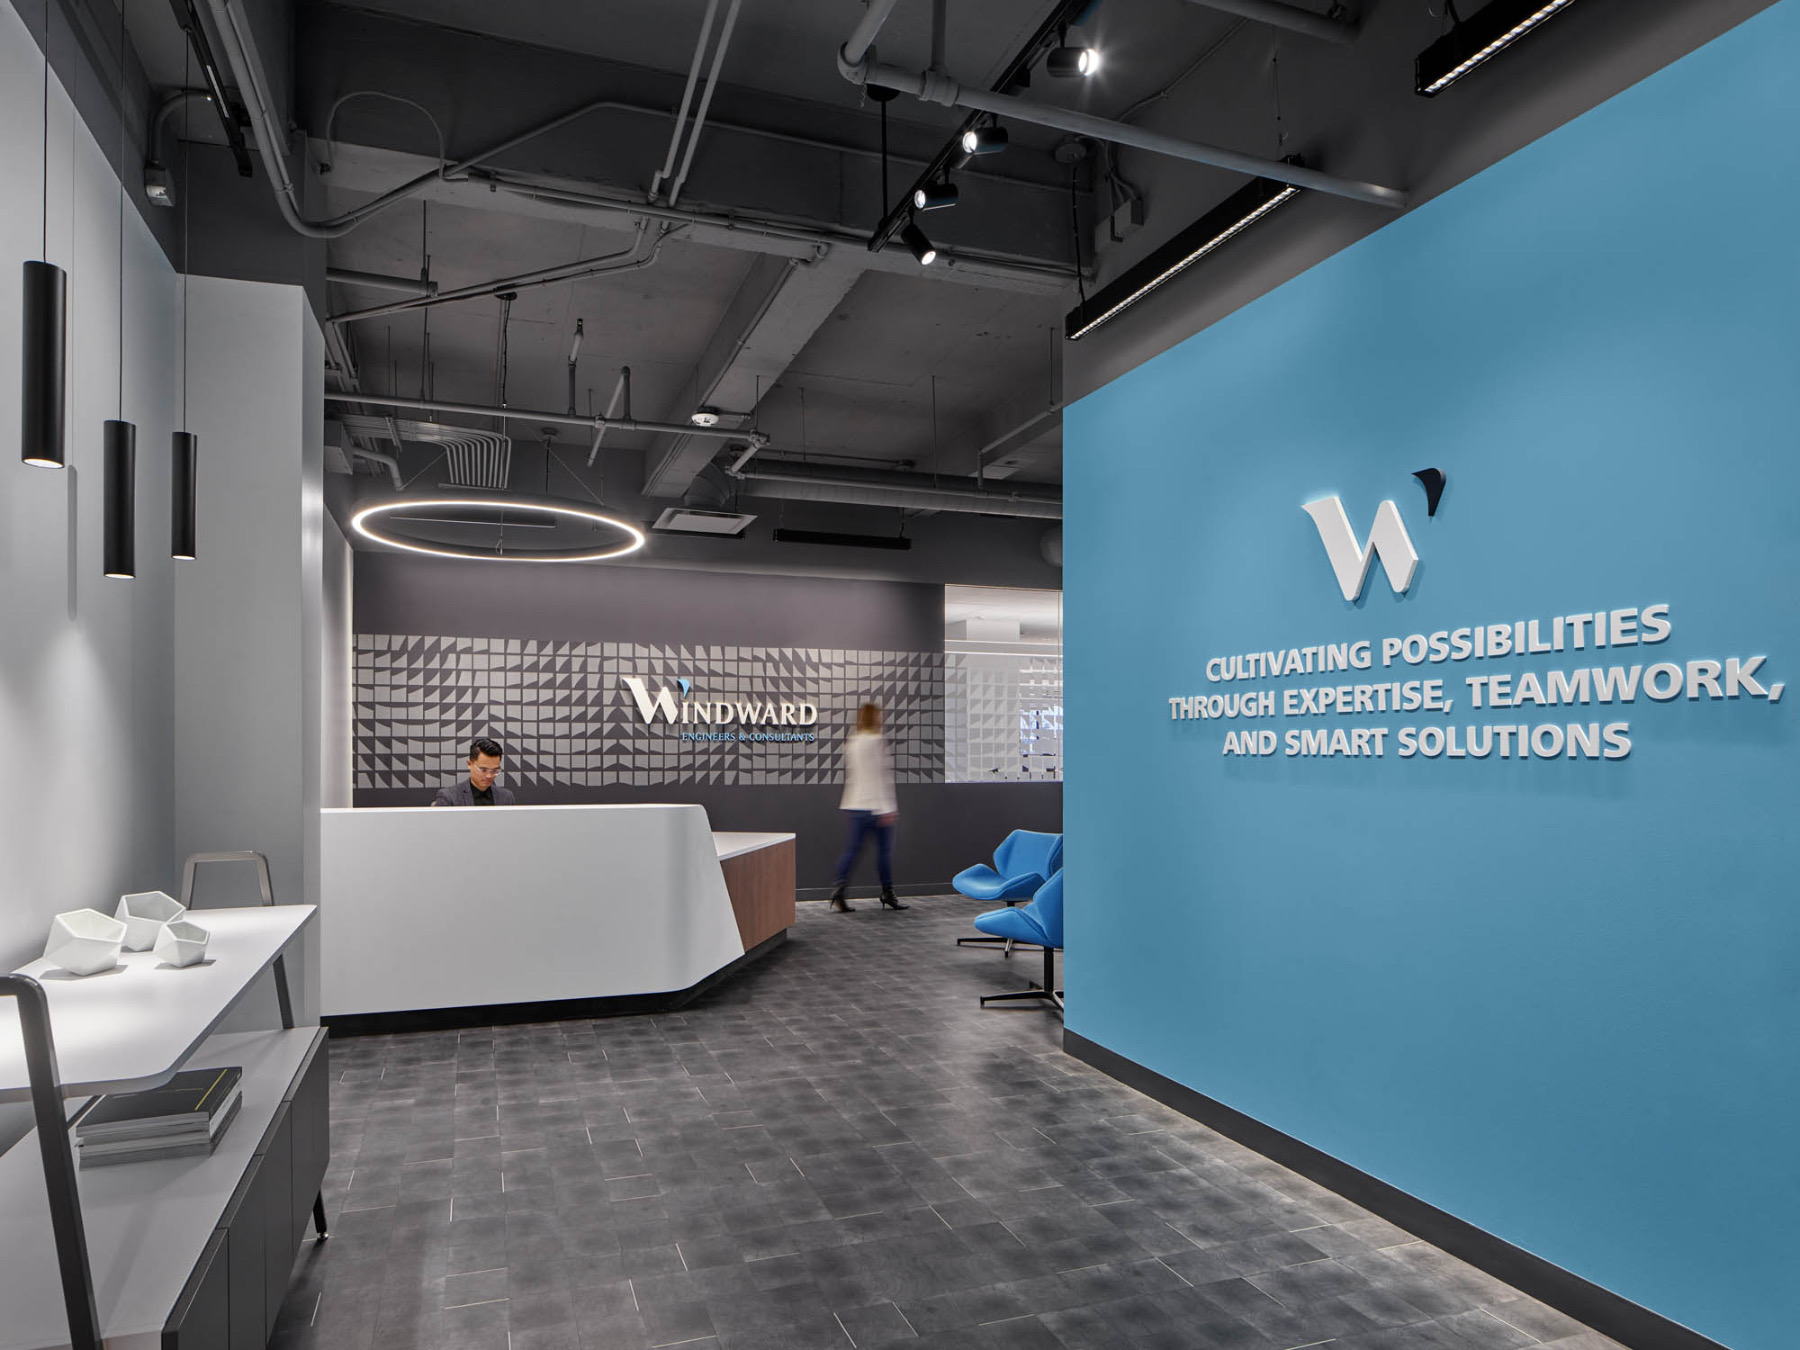 A Look Inside Windward's New Harrisburg Office